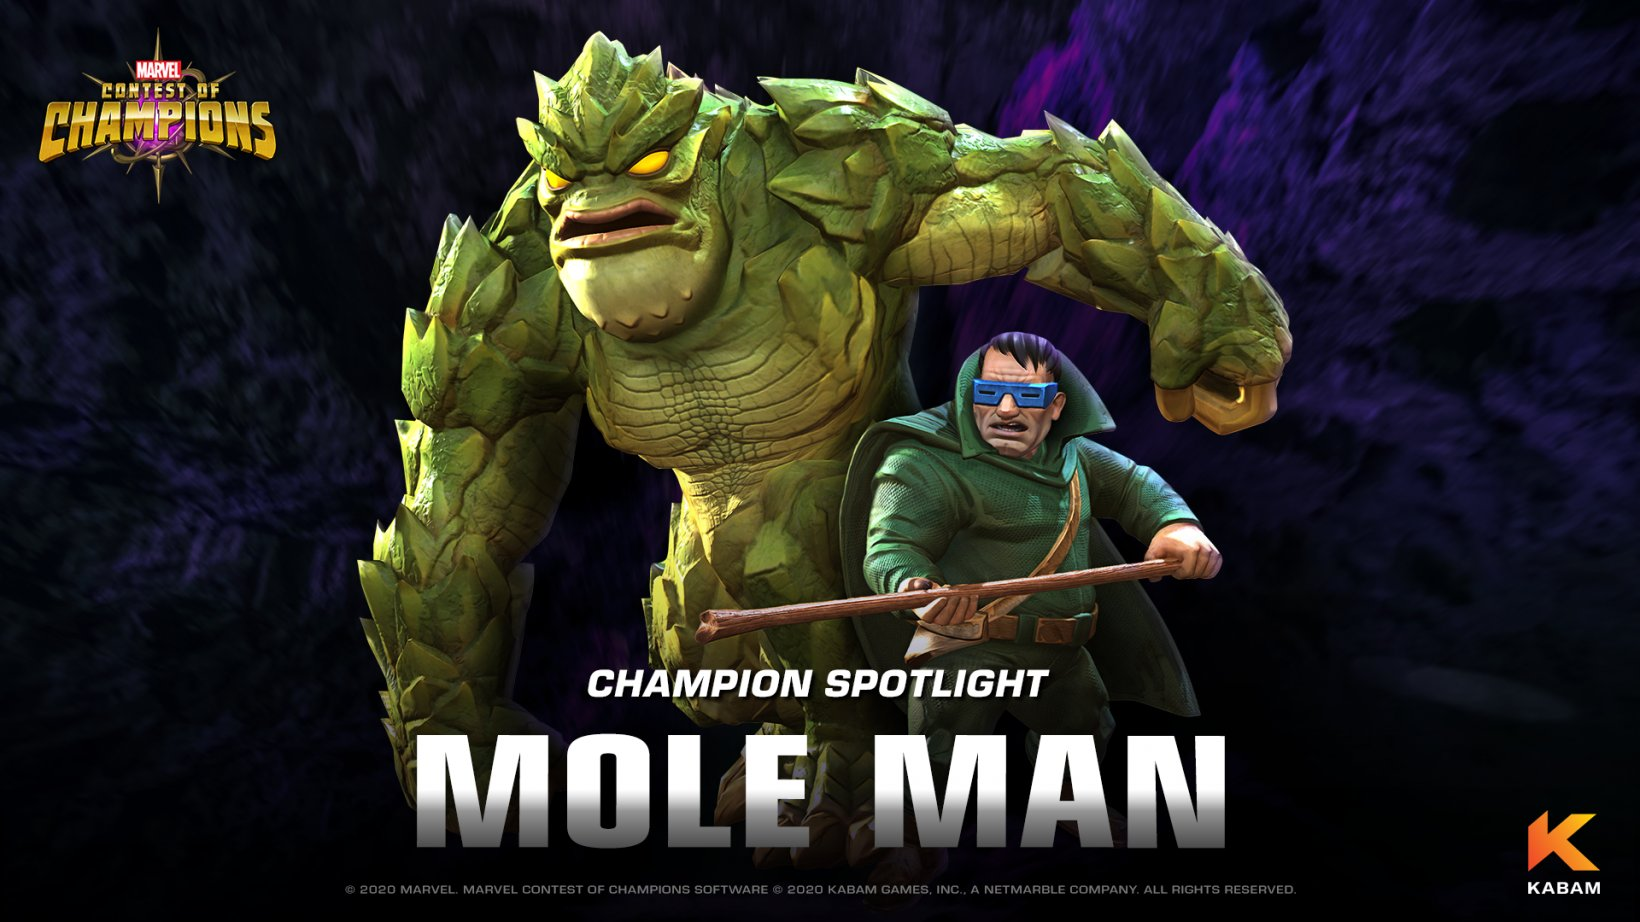 Marvel Contest of Champions' latest update introduces supervillain Mole Man to its ever-growing roster